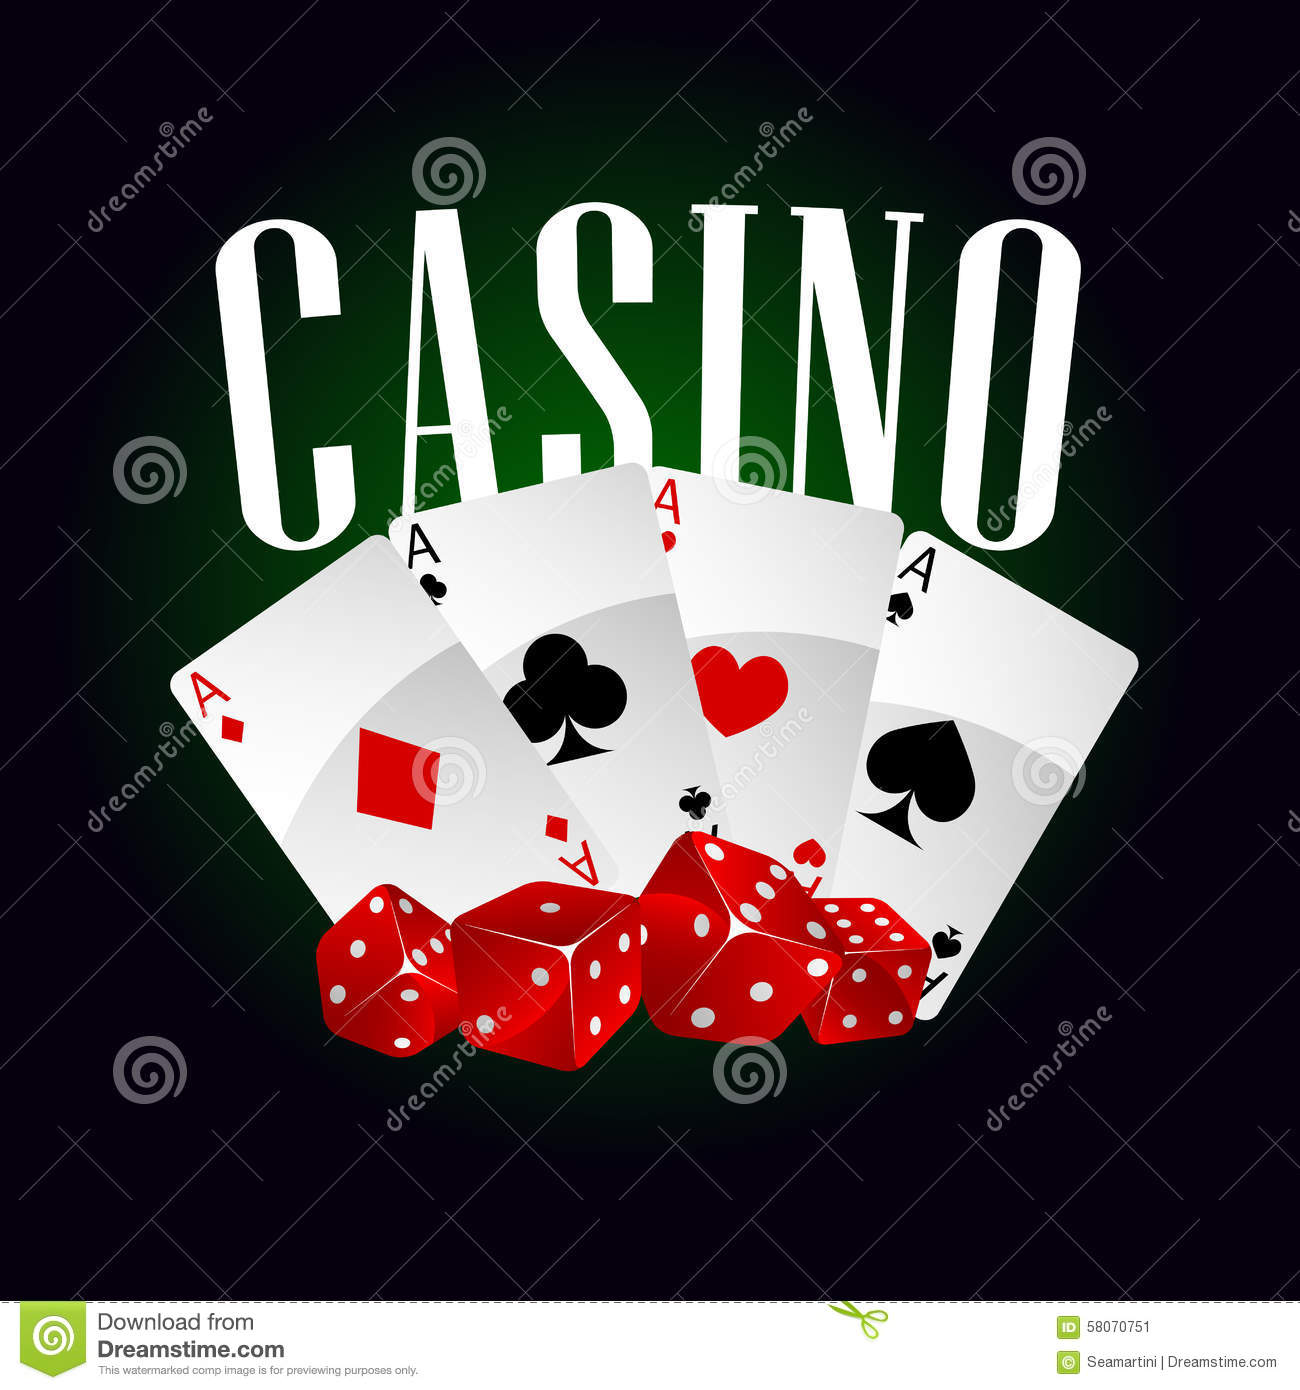 casino poker download